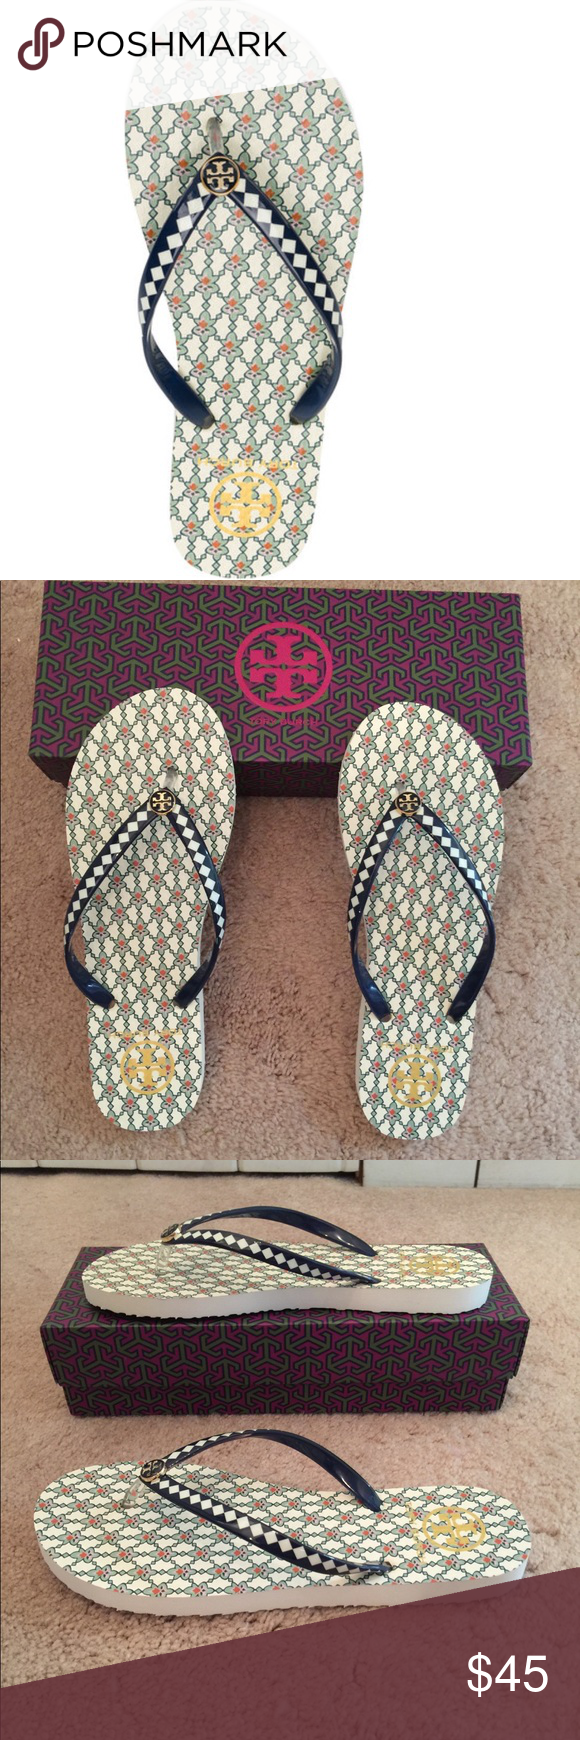 332190346f466 🆕 Tory Burch Piazza Printed Thin Flip Flop 💯% authentic Tory Burch ...